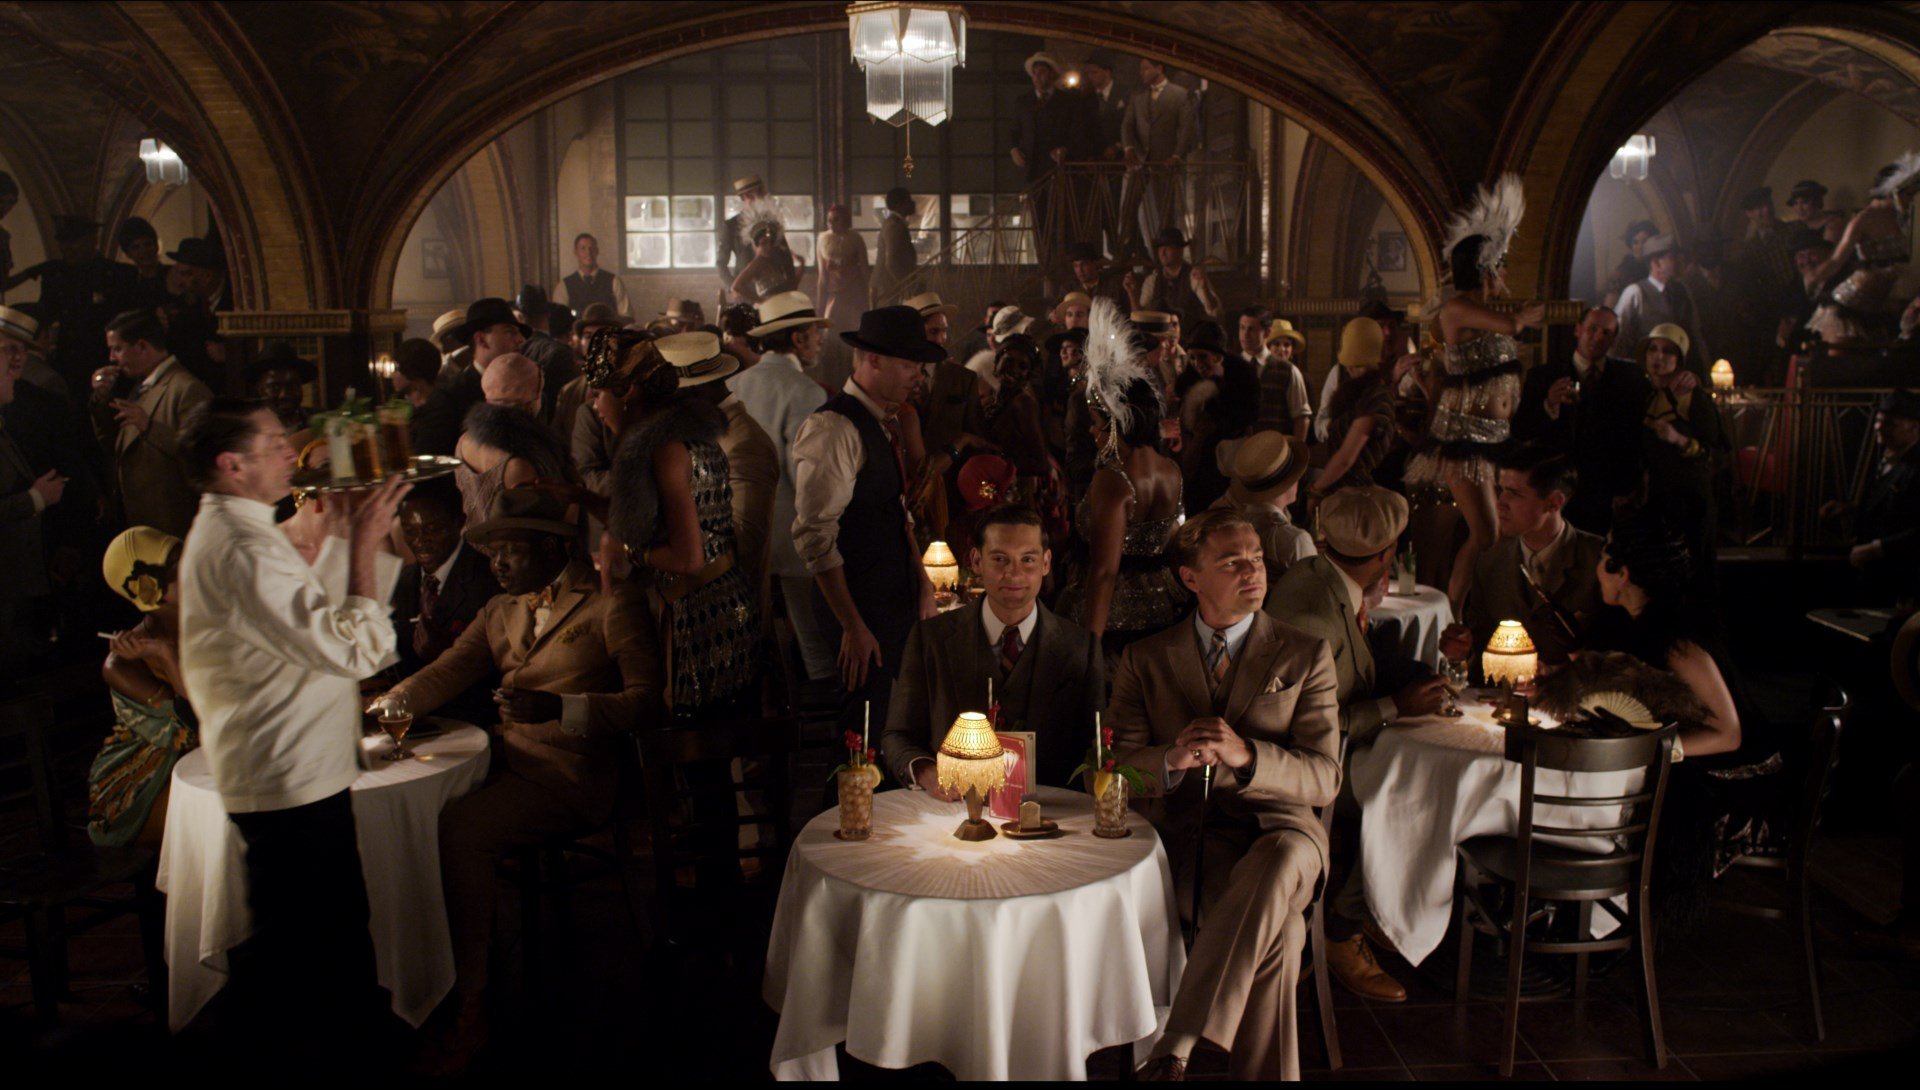 Inside the Screen- The Great Gatsby Film as an Art Deco Inspiration